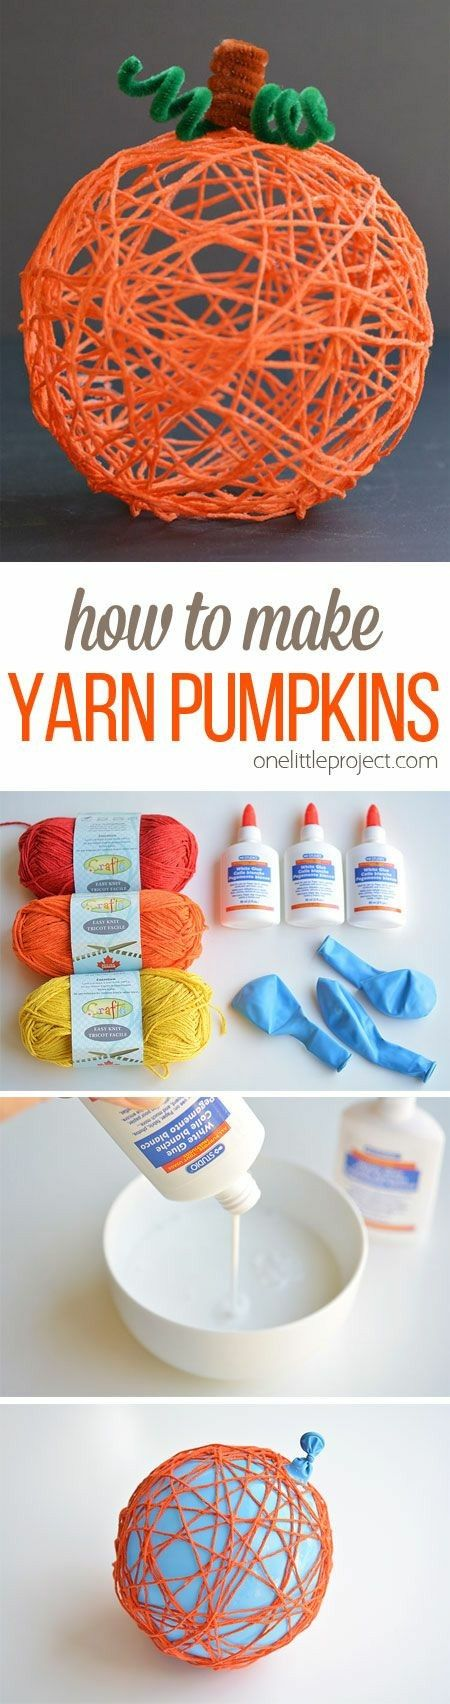 DIY fall decor, pumpkins, DIY pumpkins, yarn, balloons, glue, DIY project, kids crafts, kids project, Halloween project, autumn easy to make, wall decor, fall decor,  painted sign, shelf, mantle, living room, dining room, family room, kitchen, bedroom, hallway, gifts, present, homemade #afflink